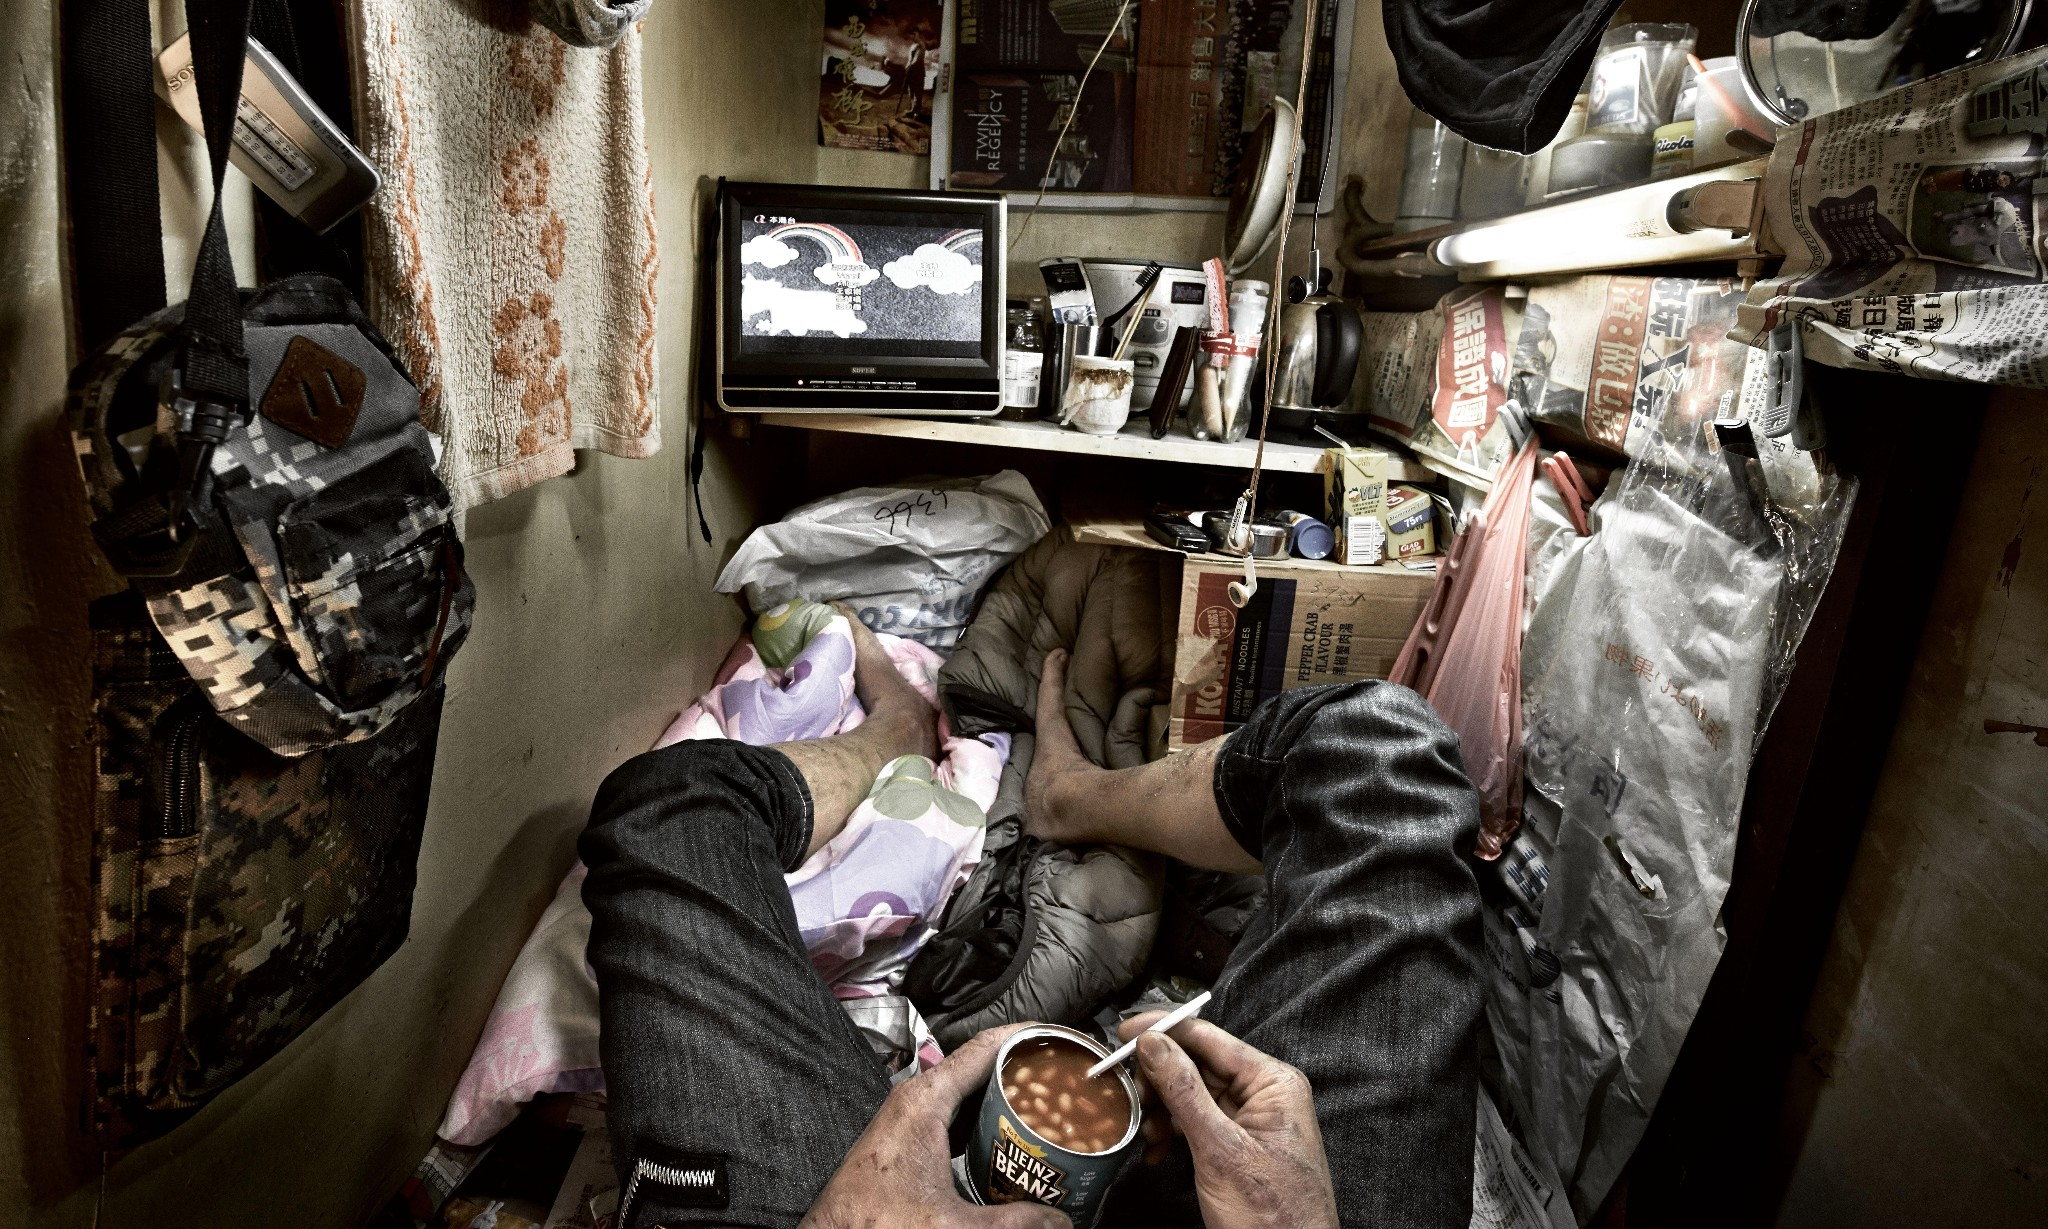 Boxed in: life inside the 'coffin cubicles' of Hong Kong – in pictures